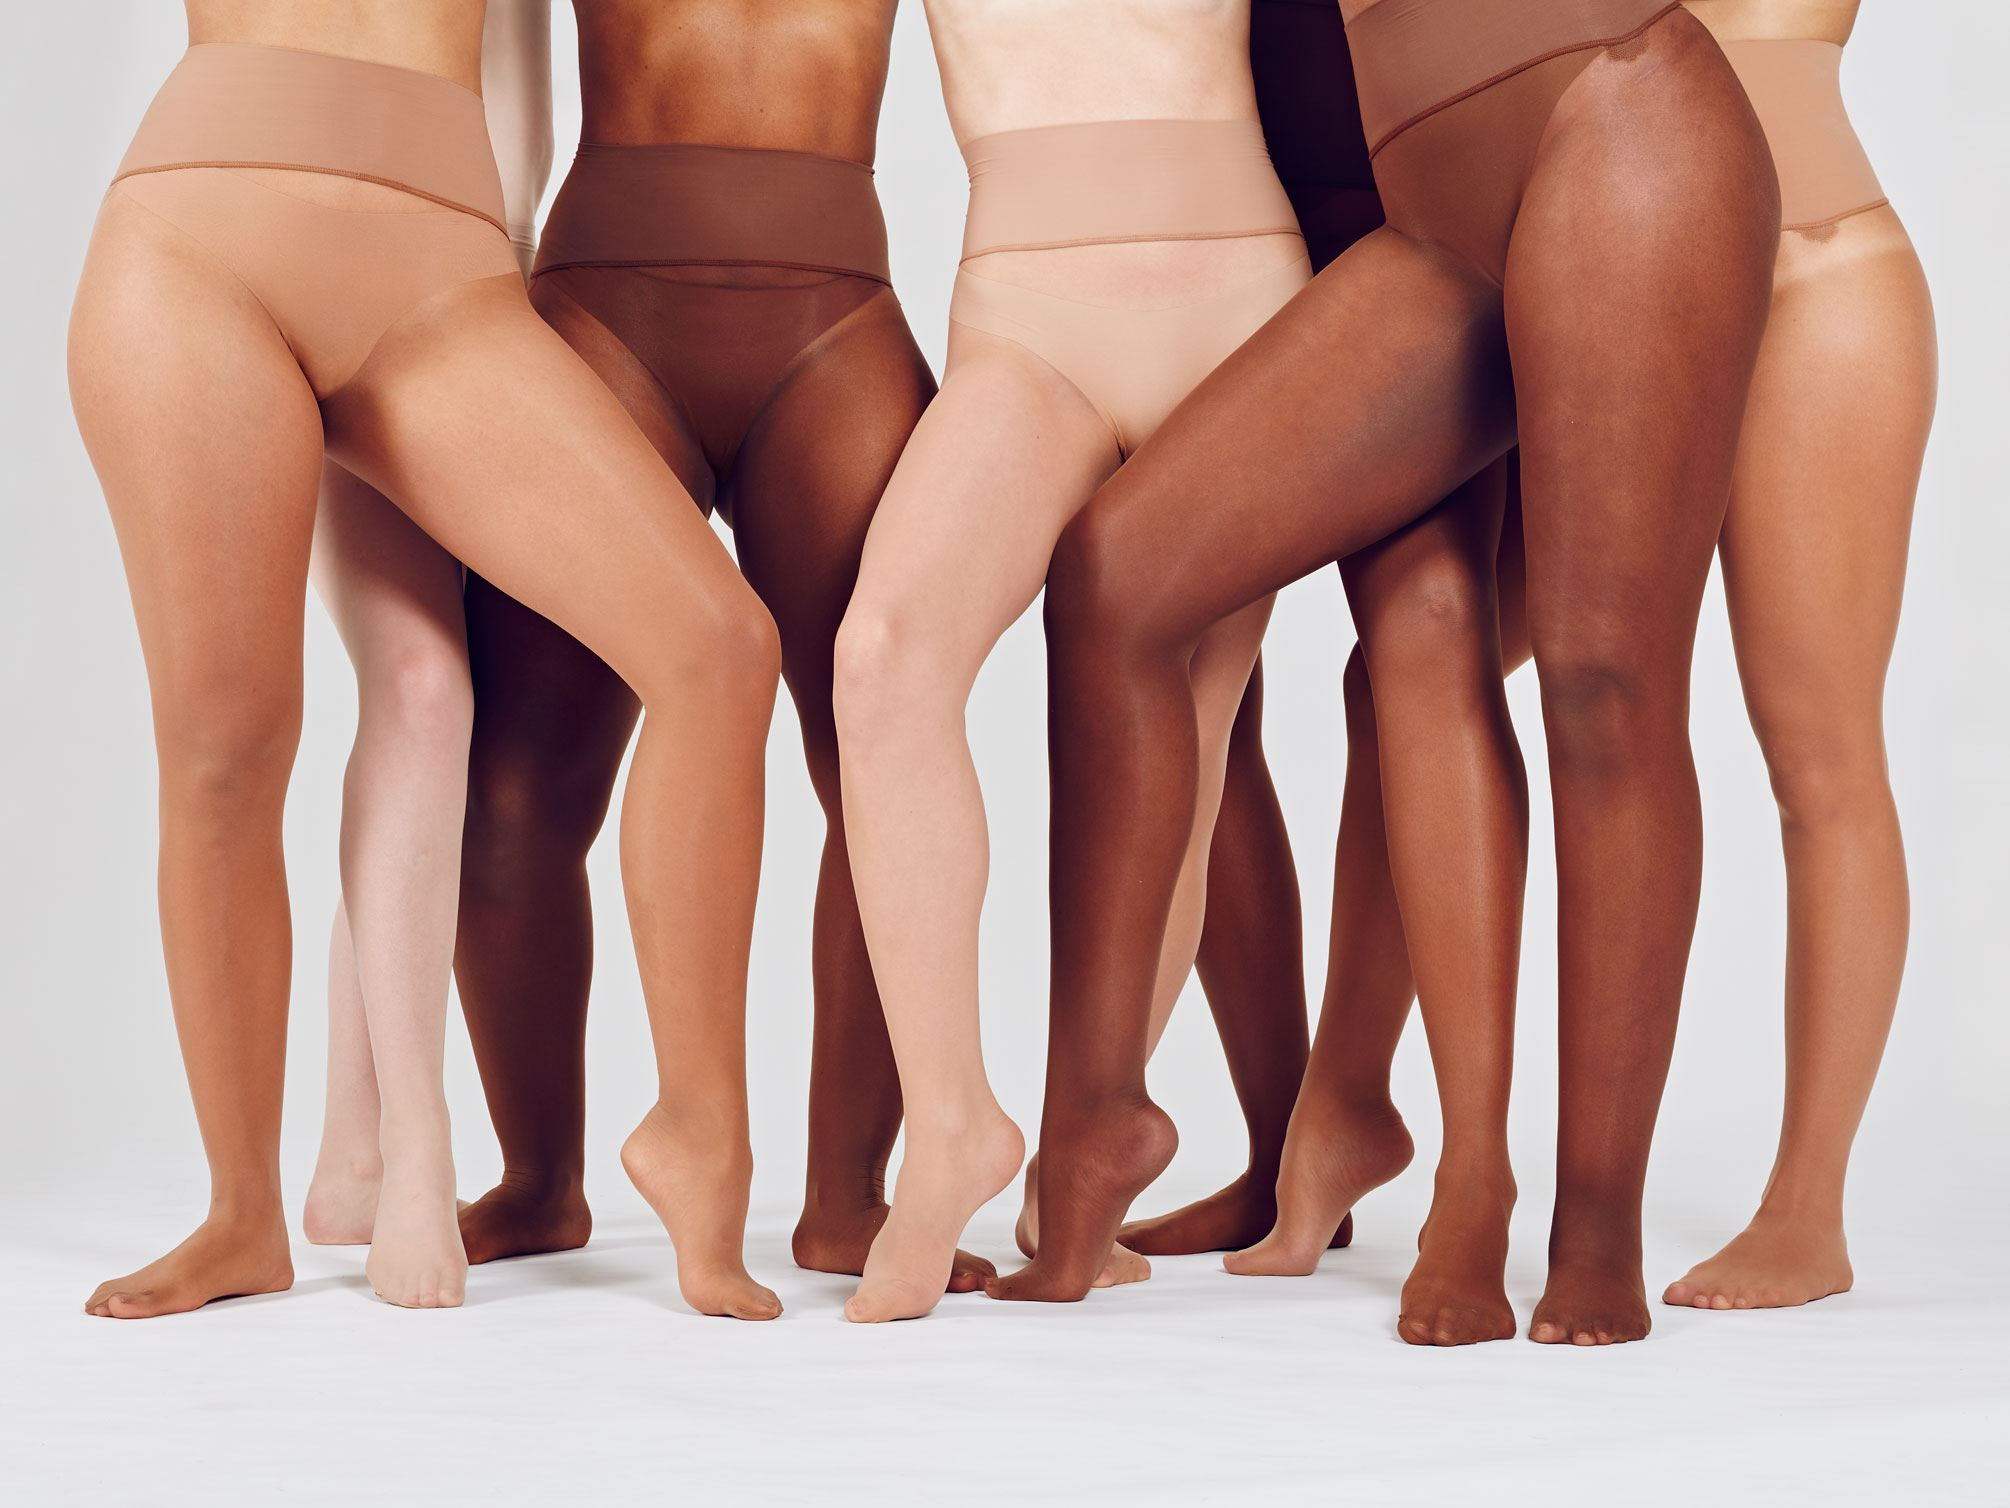 Heist tights come in a range of skintones, reviewed